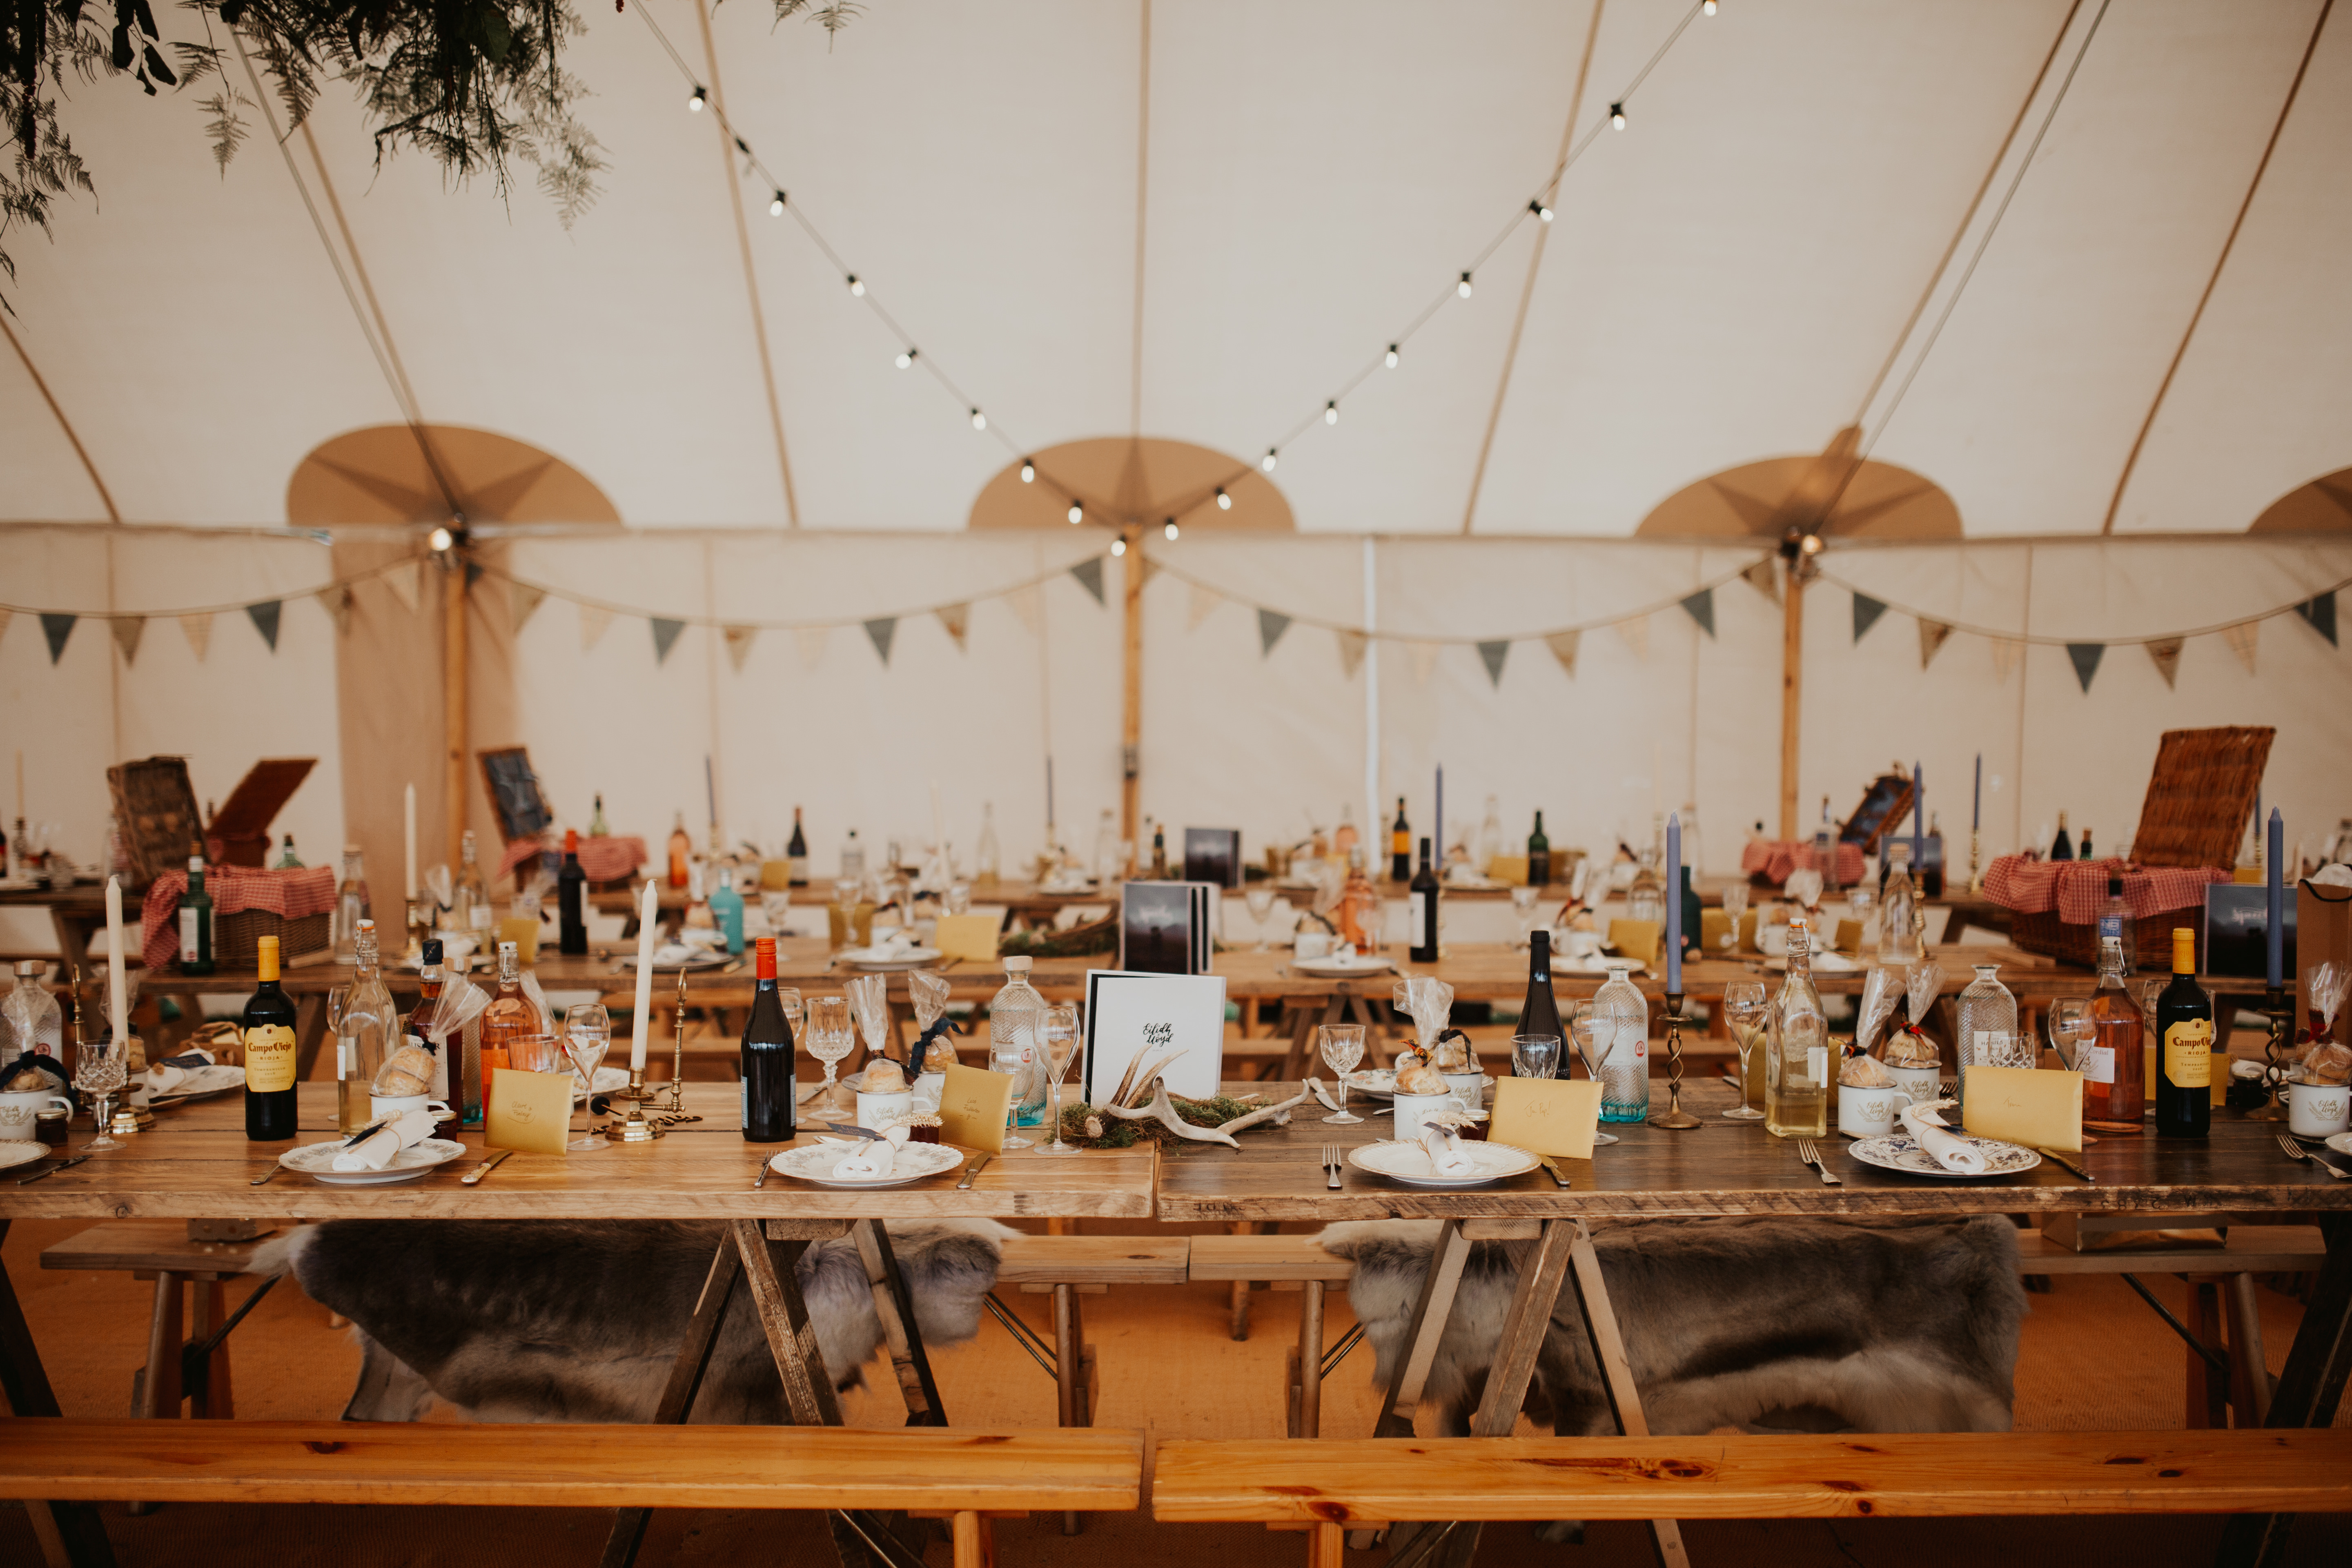 PapaKåta couple Eilidh & Lloyd's Sperry Wedding in Glenfarg, Perthshire captured by Colin Ross Photography- Sperry Tent interior